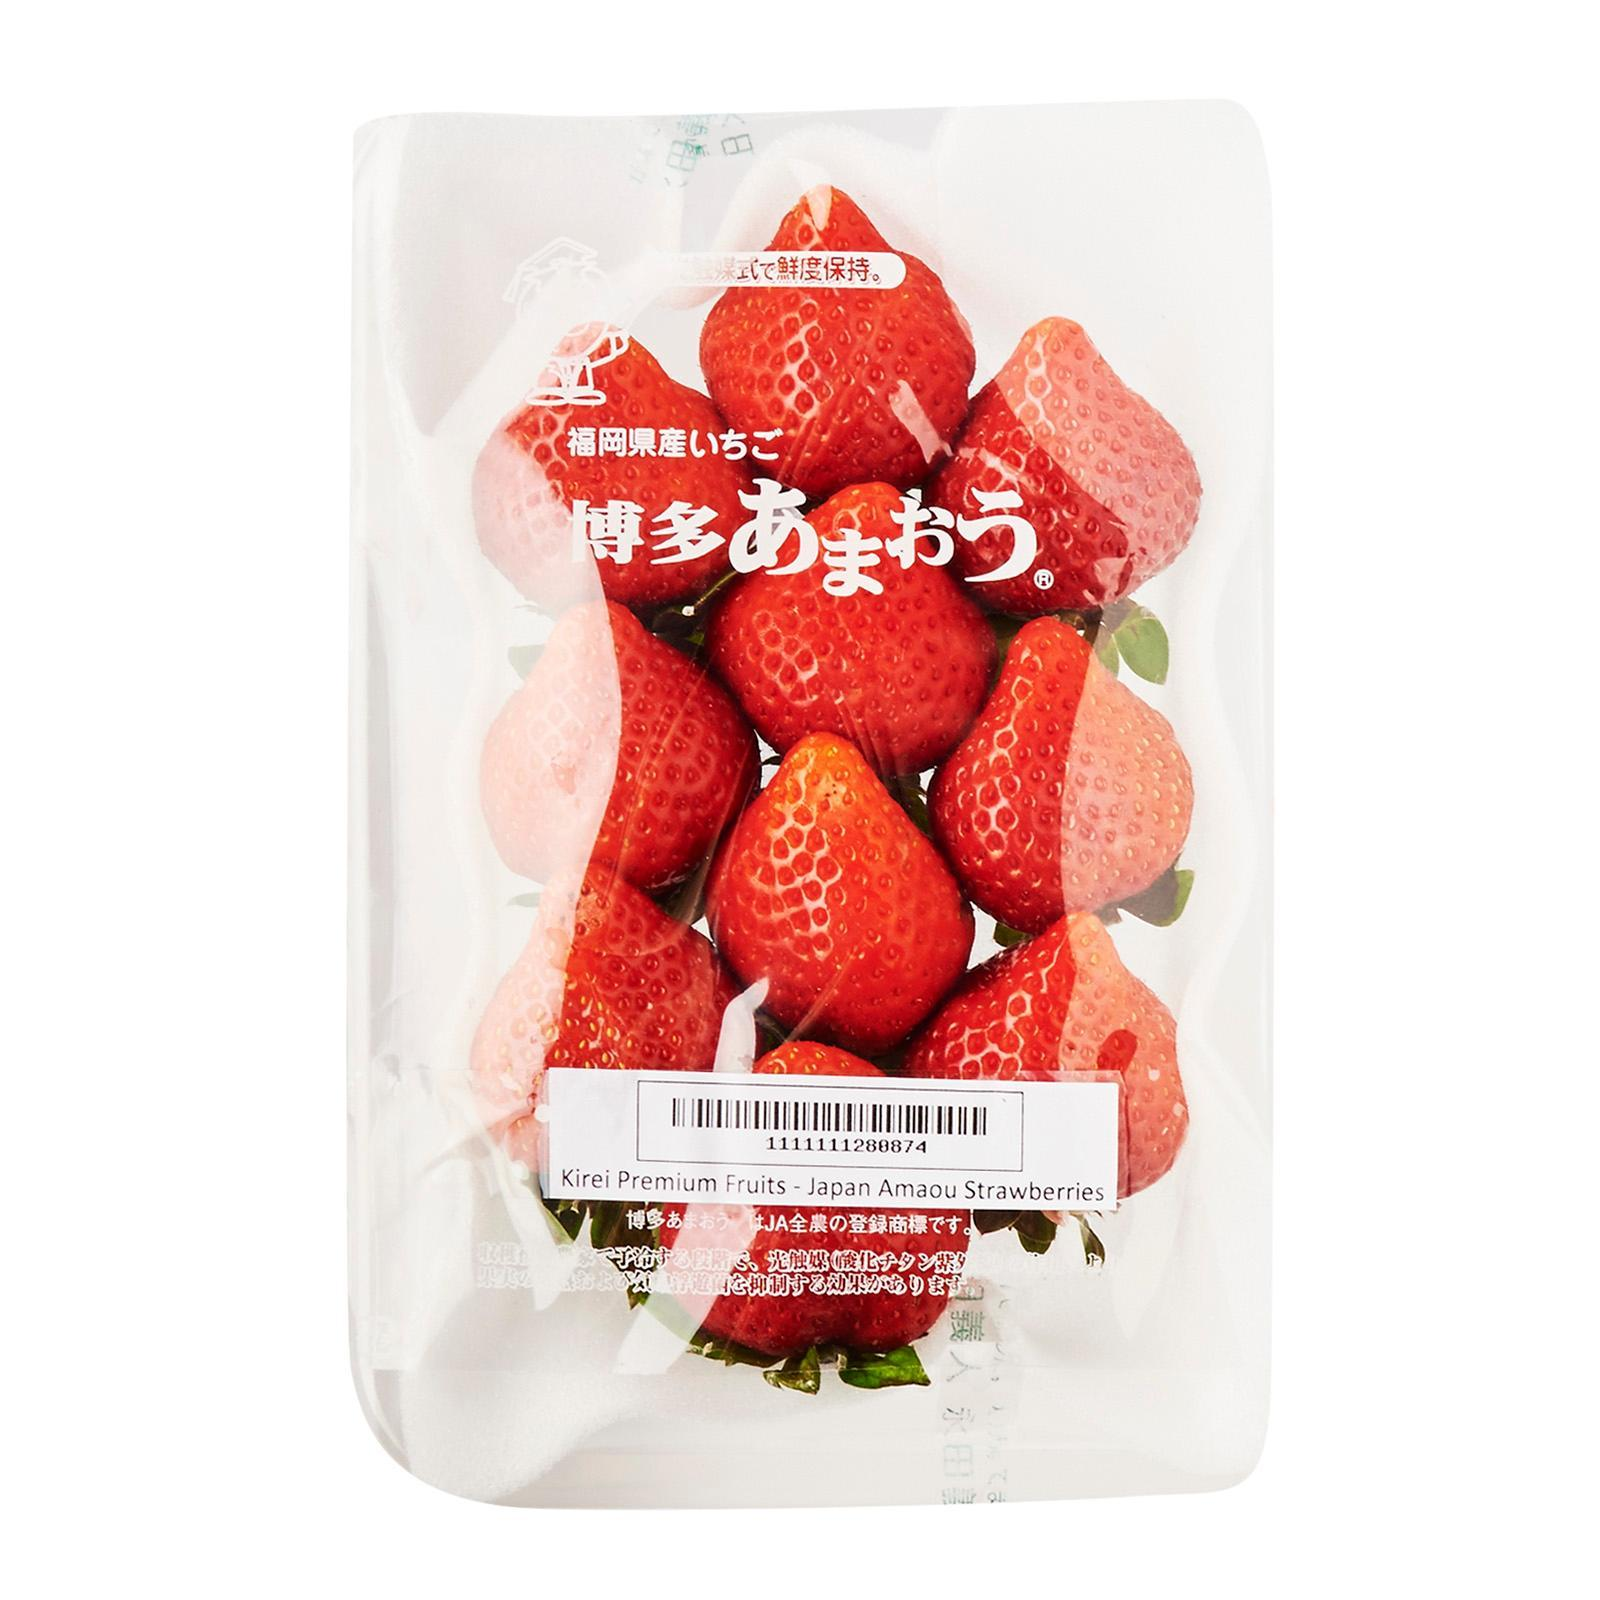 Kirei Premium Fruits - Japan Amaou Strawberries